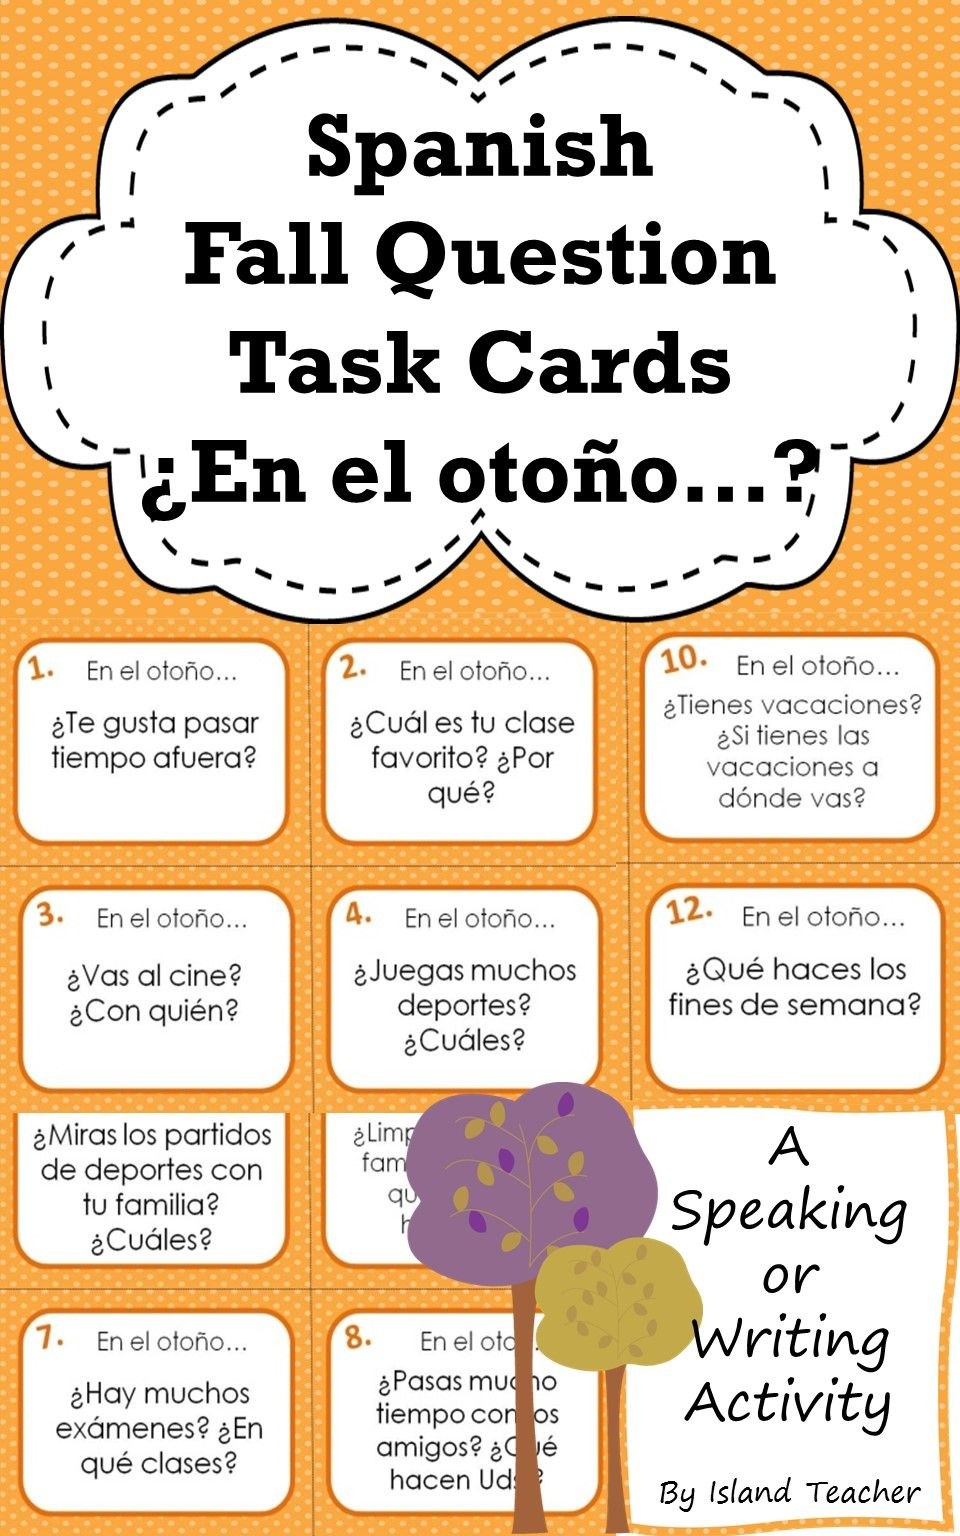 Get Students Speaking Or Writing About The Season Use For Stations Games Warm Ups Or Partner Activi How To Speak Spanish Teaching Spanish Spanish Activities